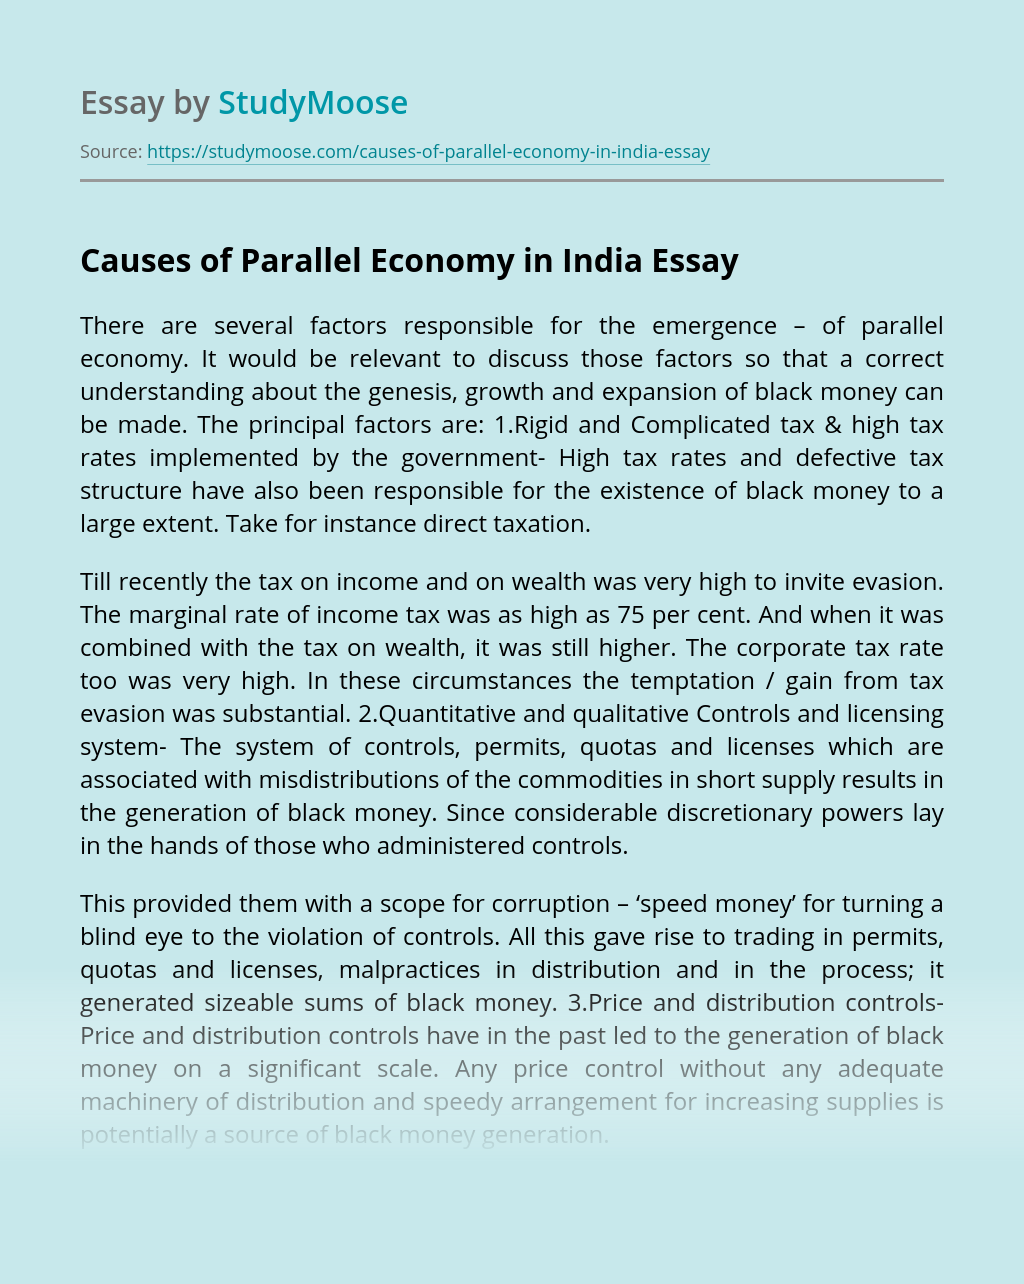 Causes of Parallel Economy in India